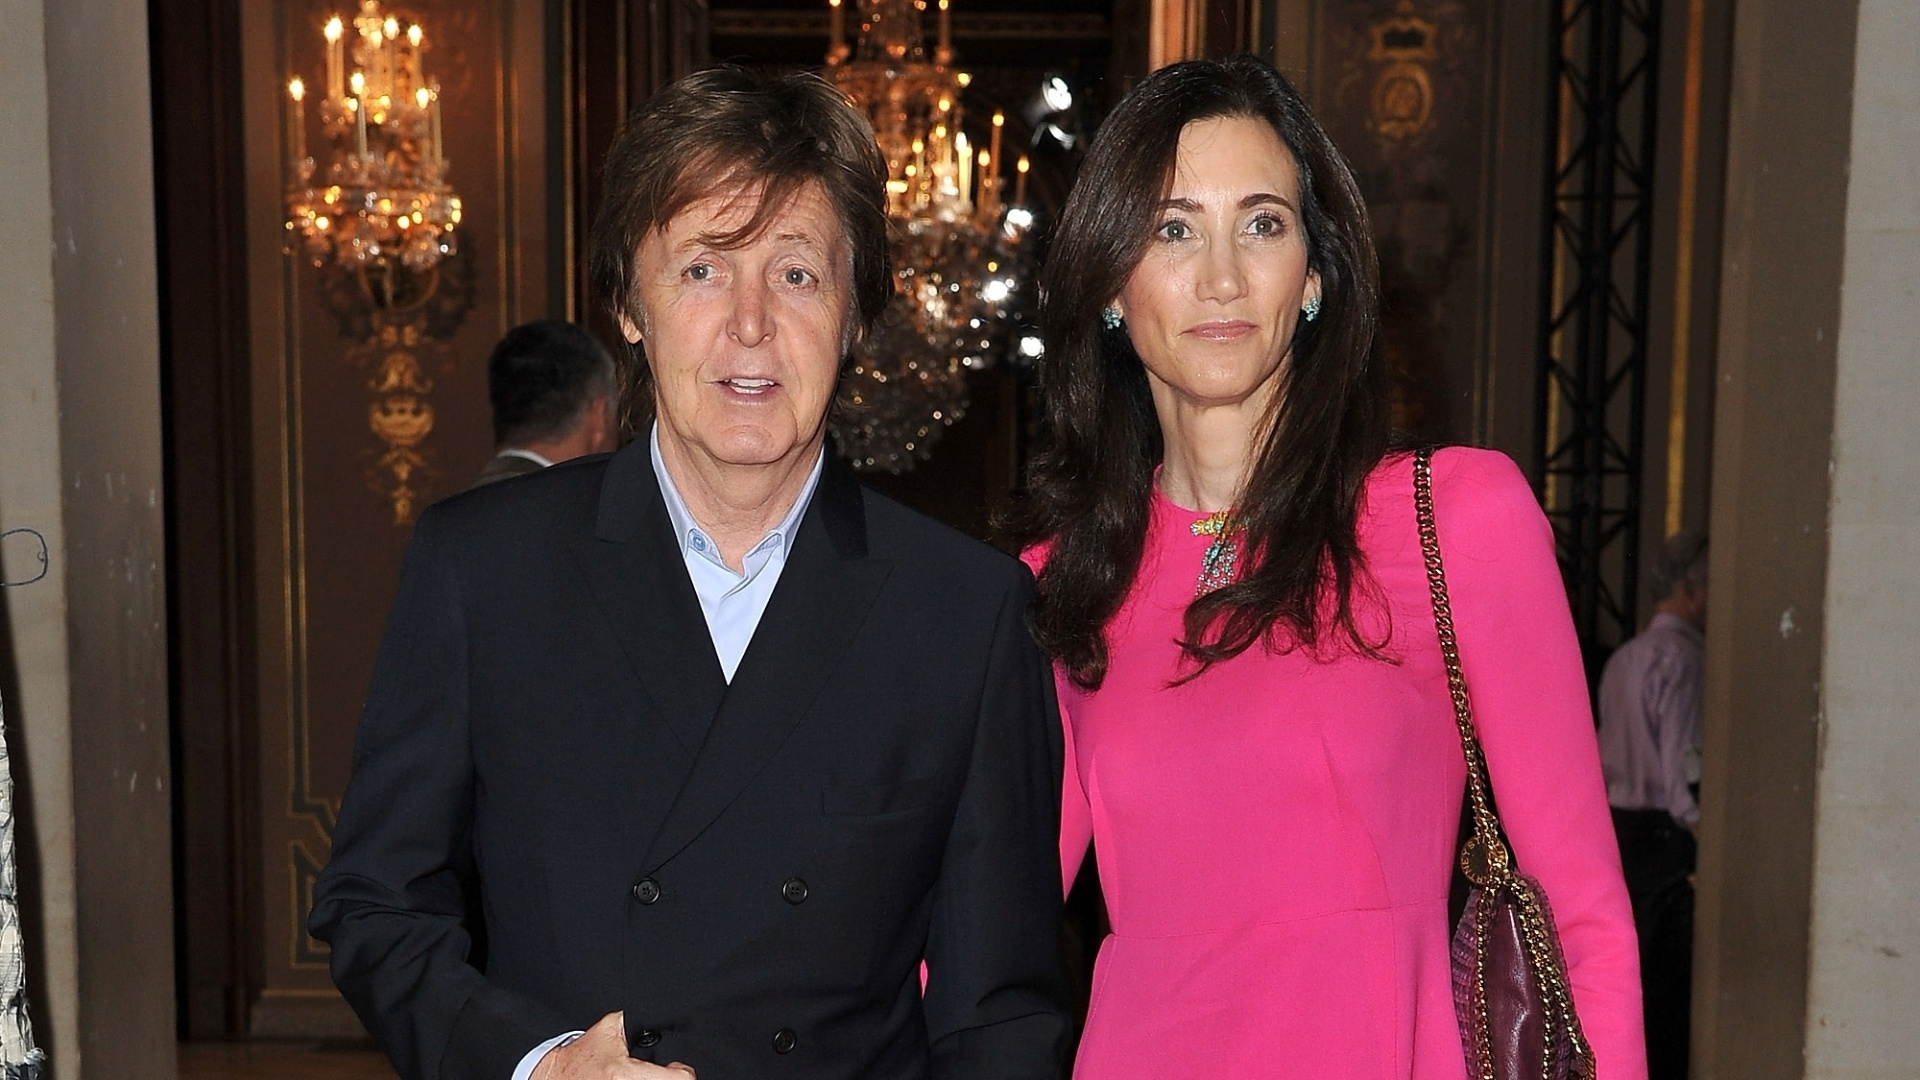 Paul McCartney e a mulher Nancy Shevell viajaram para a capital francesa para assistir ao desfile da filha do ex-Beatle, Stella McCartney, durante a Semana de Moda de Paris (6/2/12)